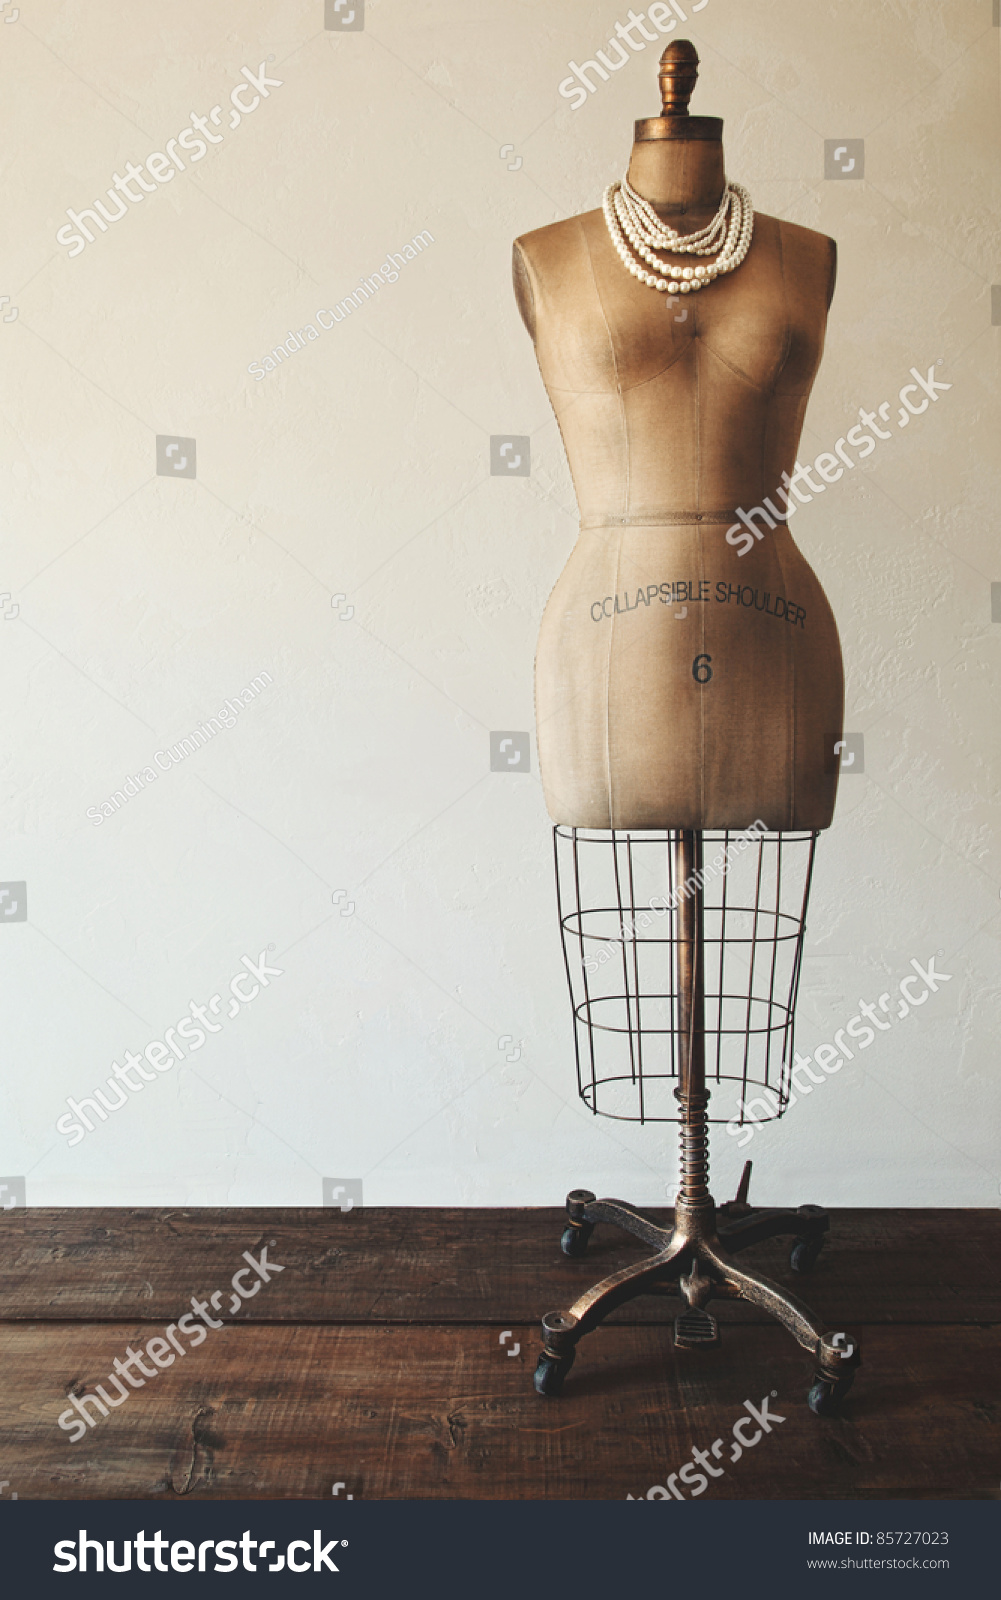 Antique Dress Form With Vintage Feel Stock Photo 85727023 ...